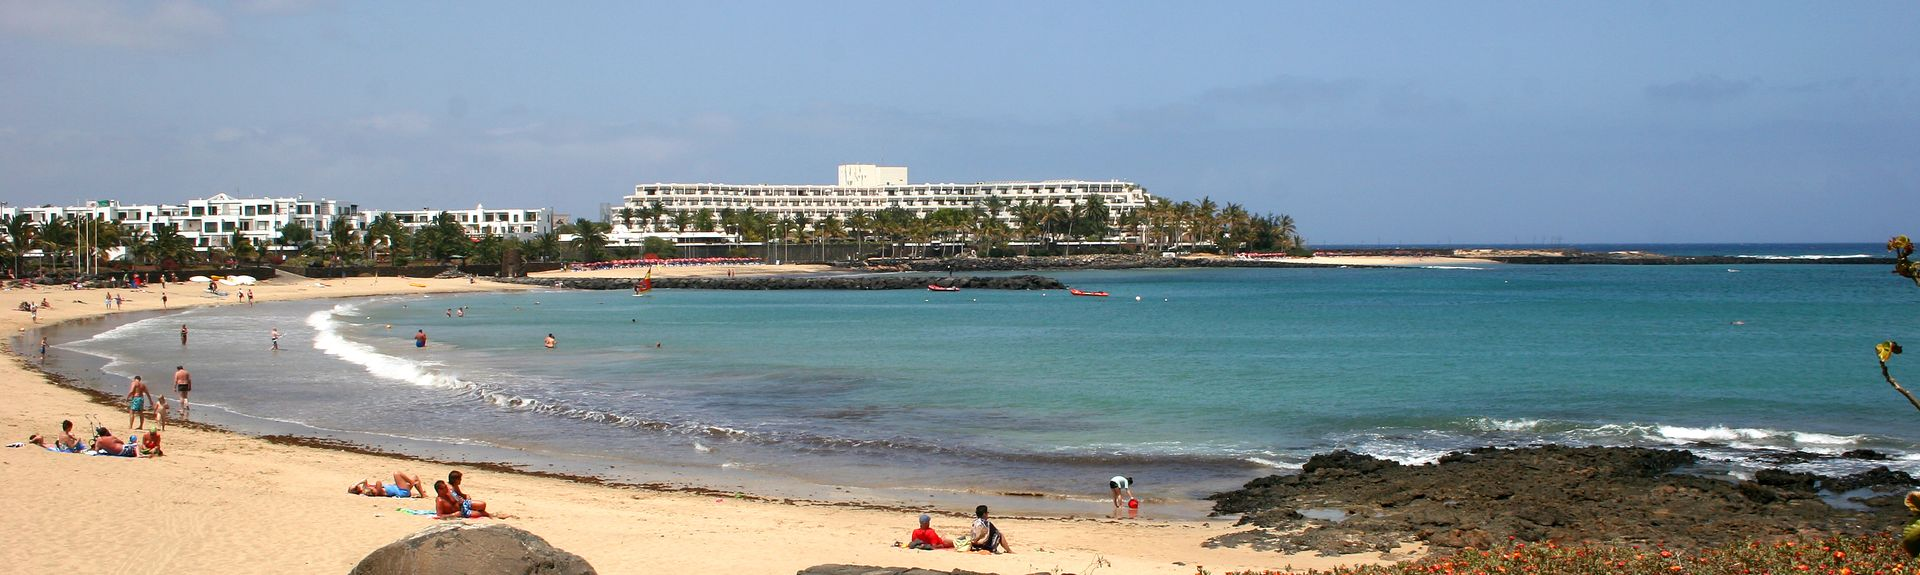 Costa Teguise, Teguise, Canary Islands, Spain